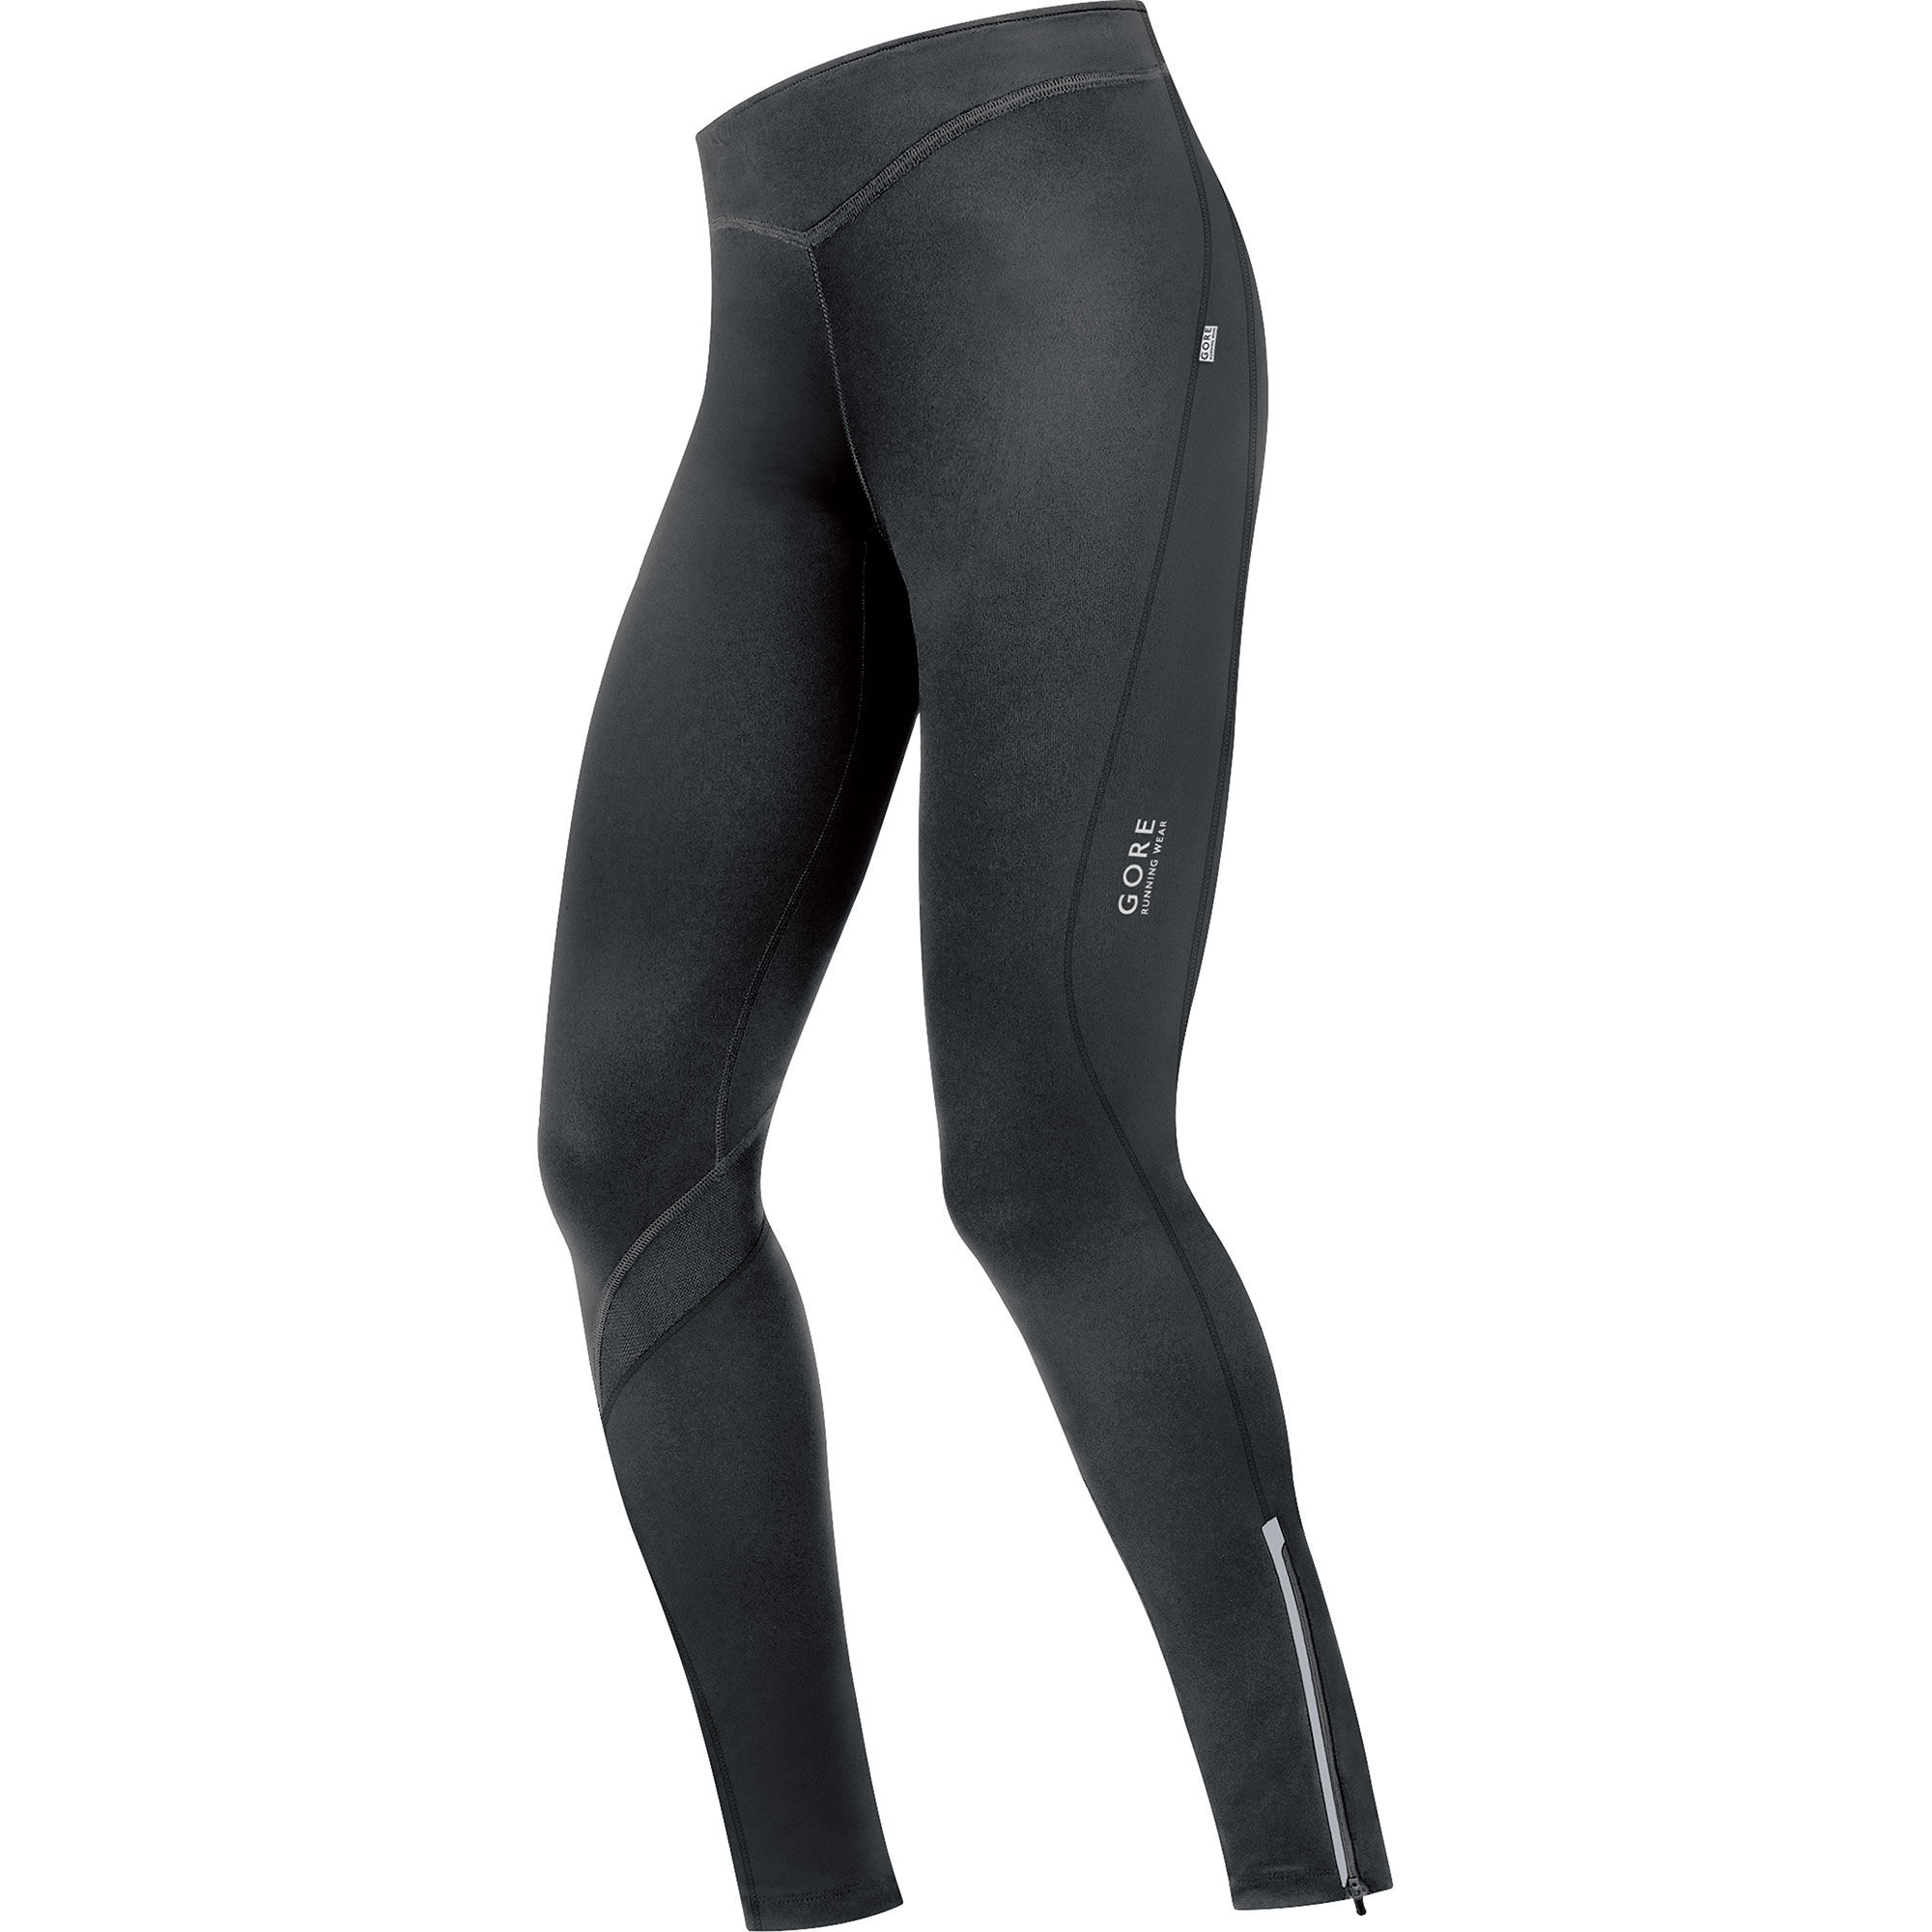 These running tights are built with premium materials to deliver all day comfort for long workouts or long weekends, and feature practical details like small pockets so your essentials go anywhere you do.